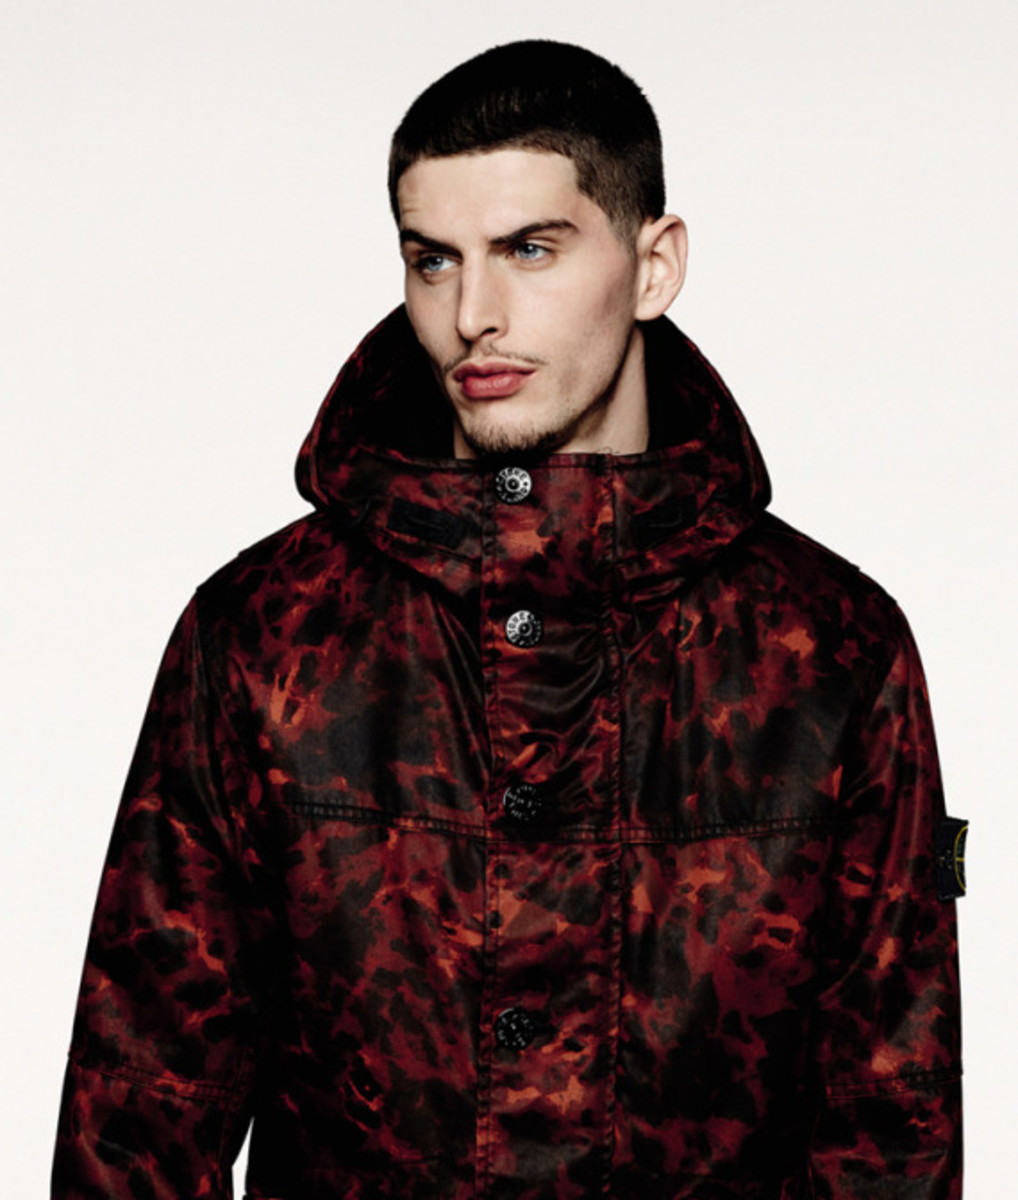 stone-island-fall-winter-2014-tortoise-camouflage-collection-02